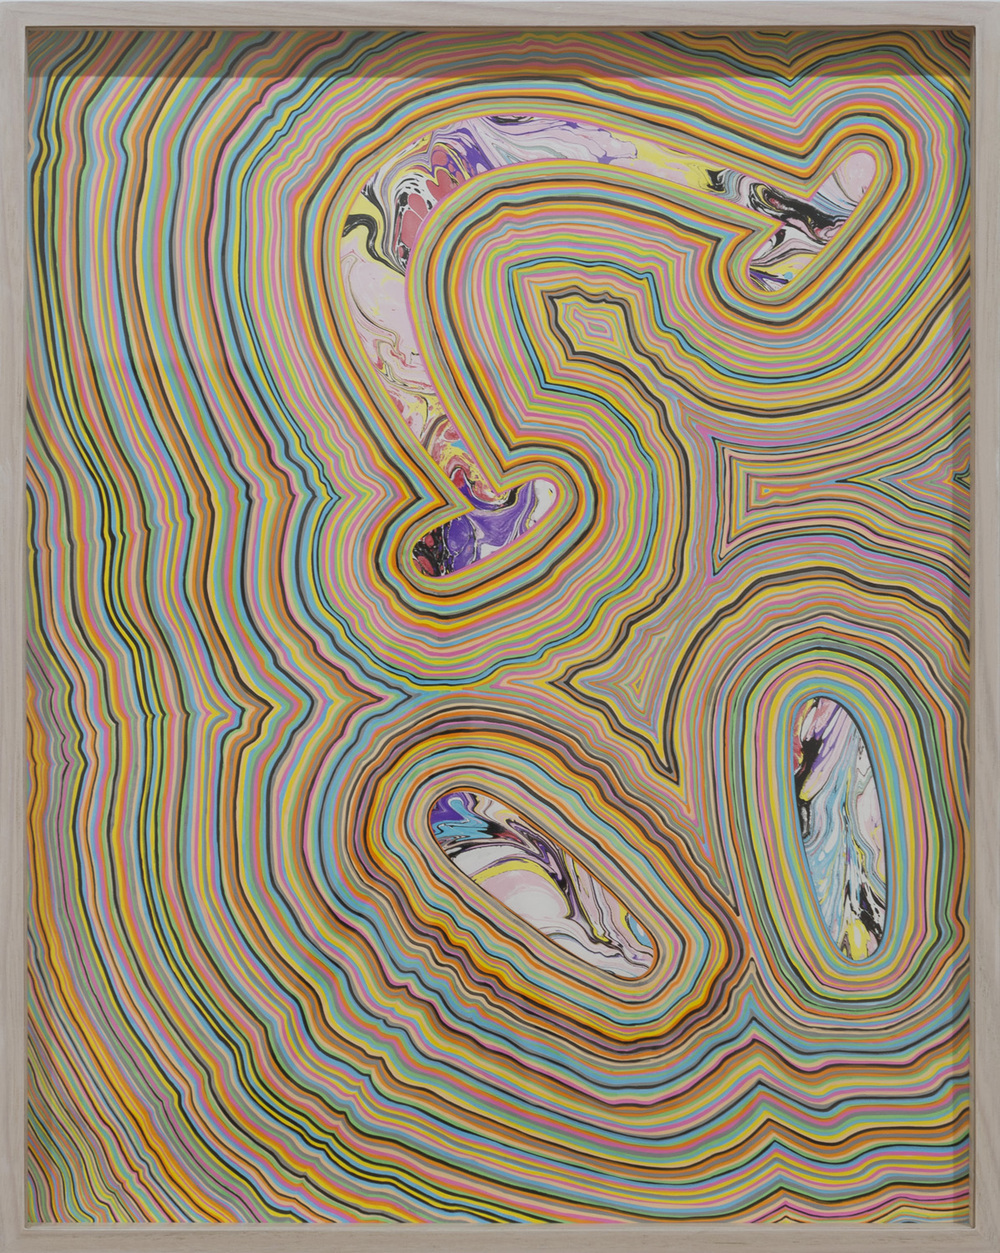 TGIF 4 (2016) marbled paper and acrylic paint pen on paper, 24 x 18 inches